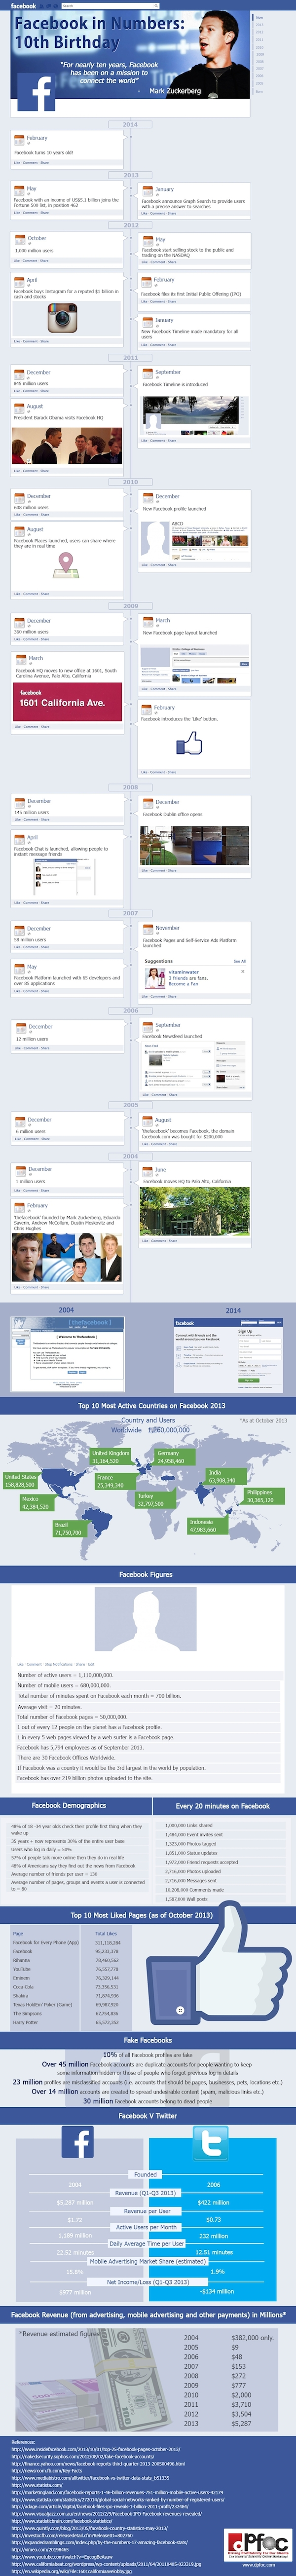 FacebookTurns10Infographic2